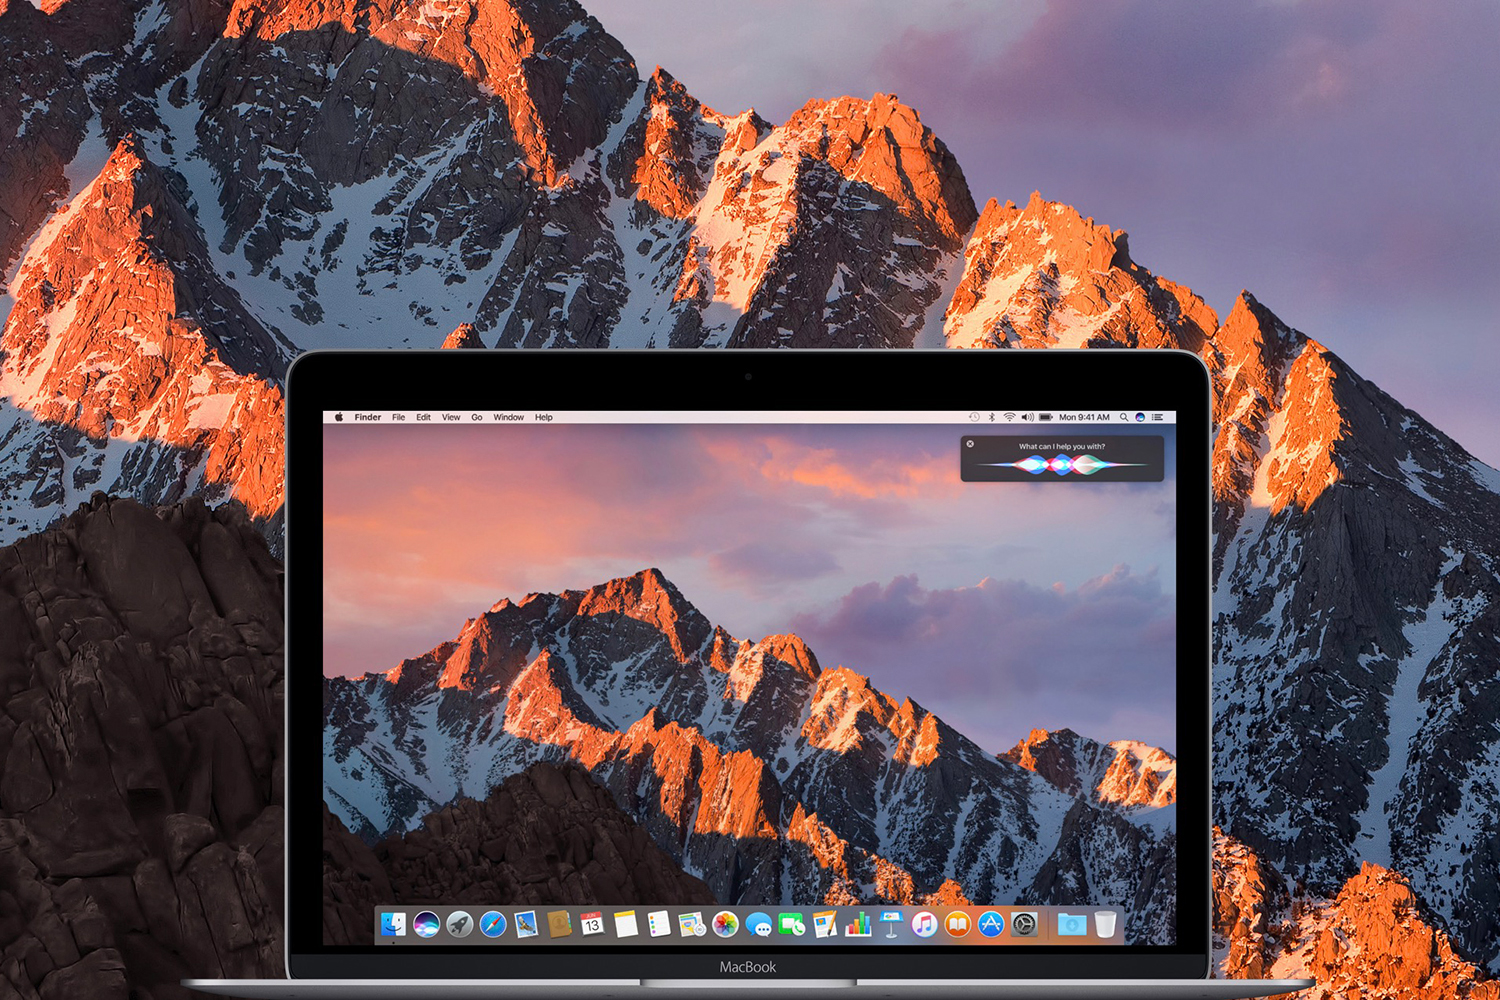 Hackintosh sous macOS Sierra : tutoriel !